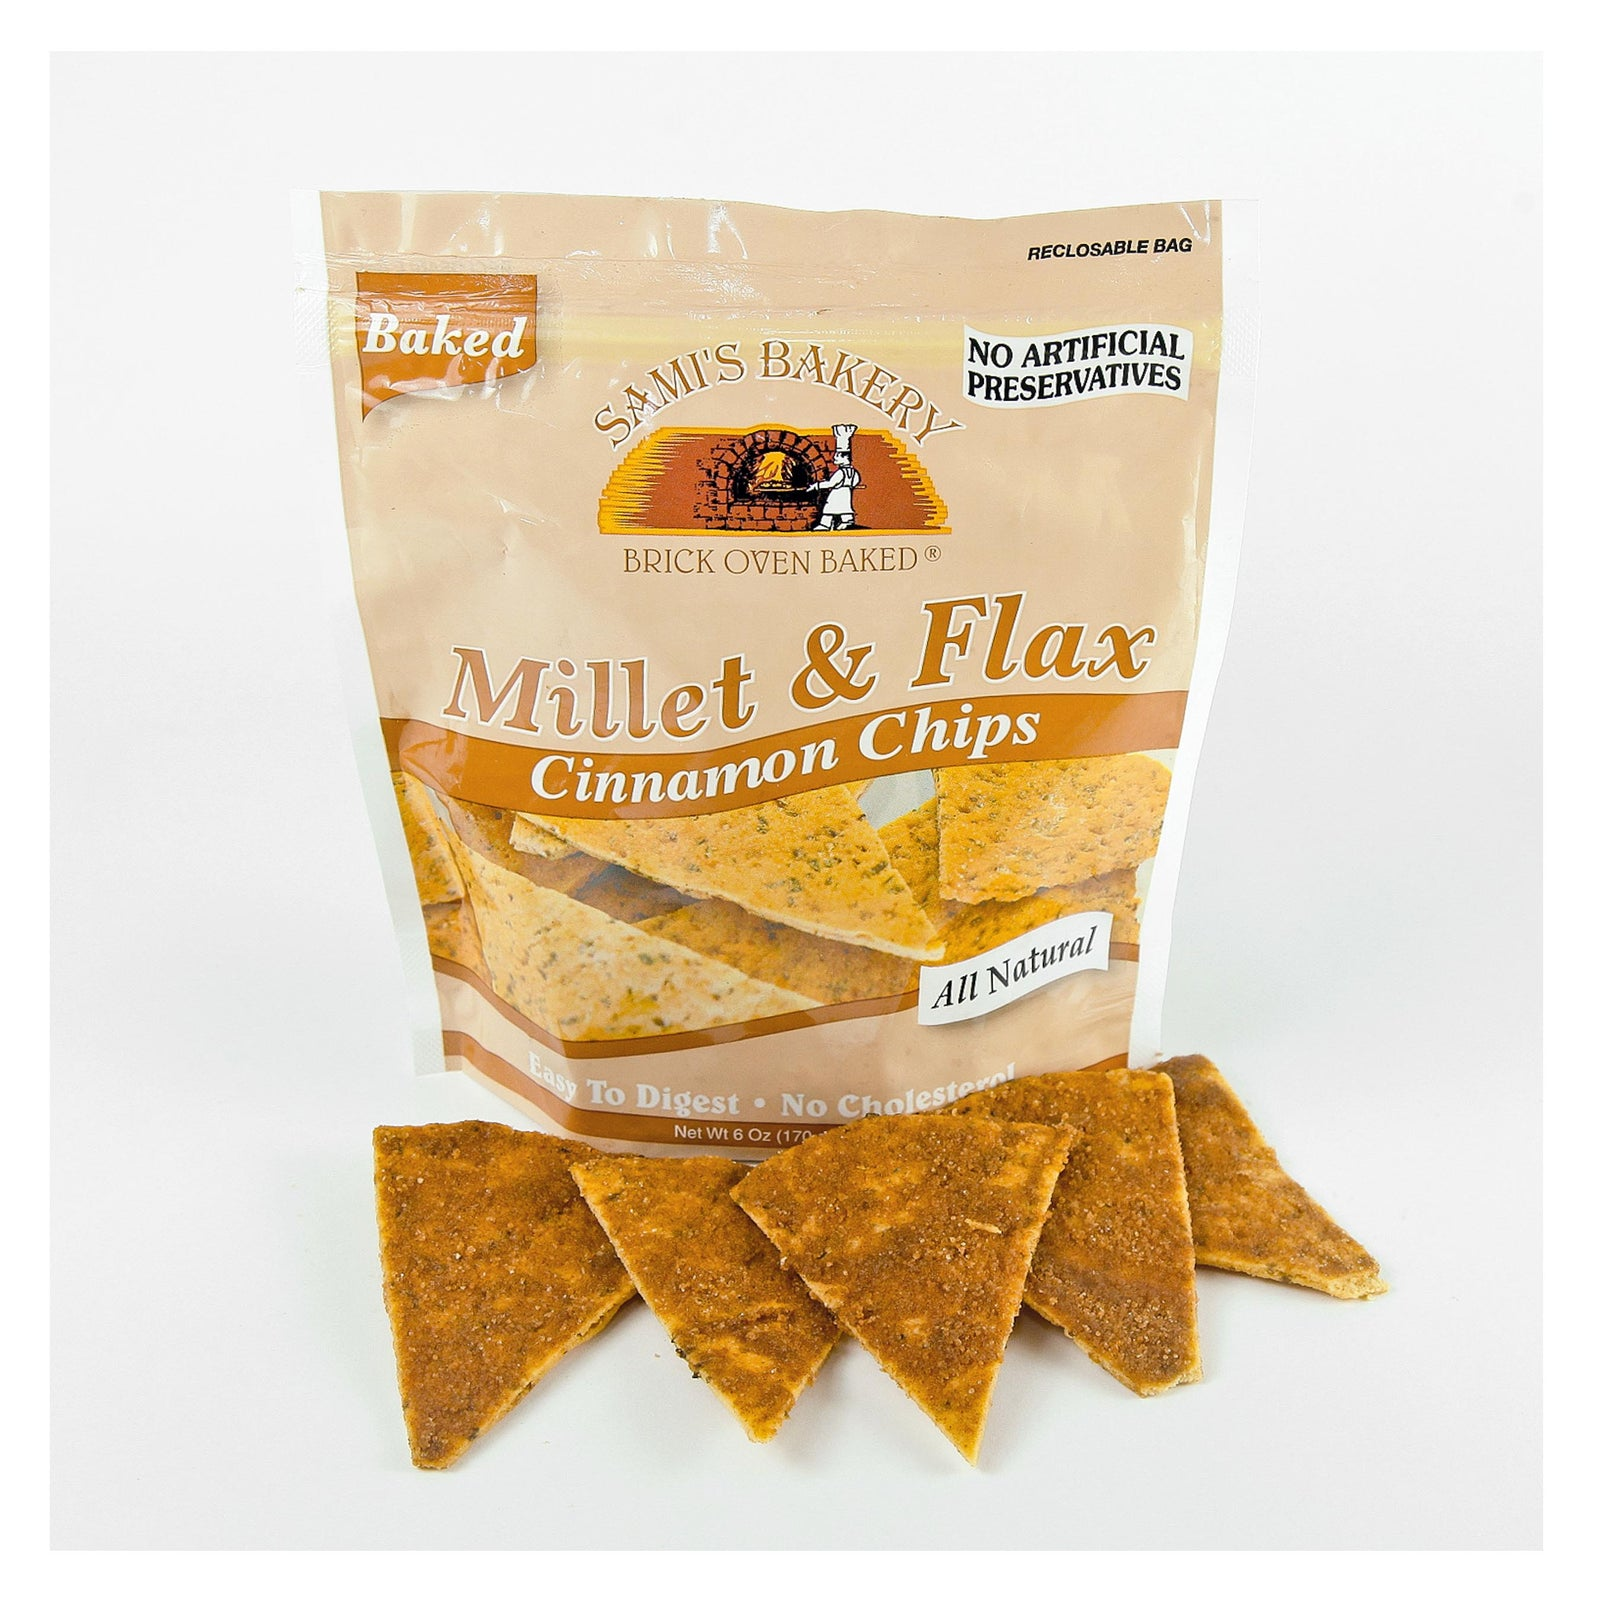 Millet & Flax Cinnamon Chips